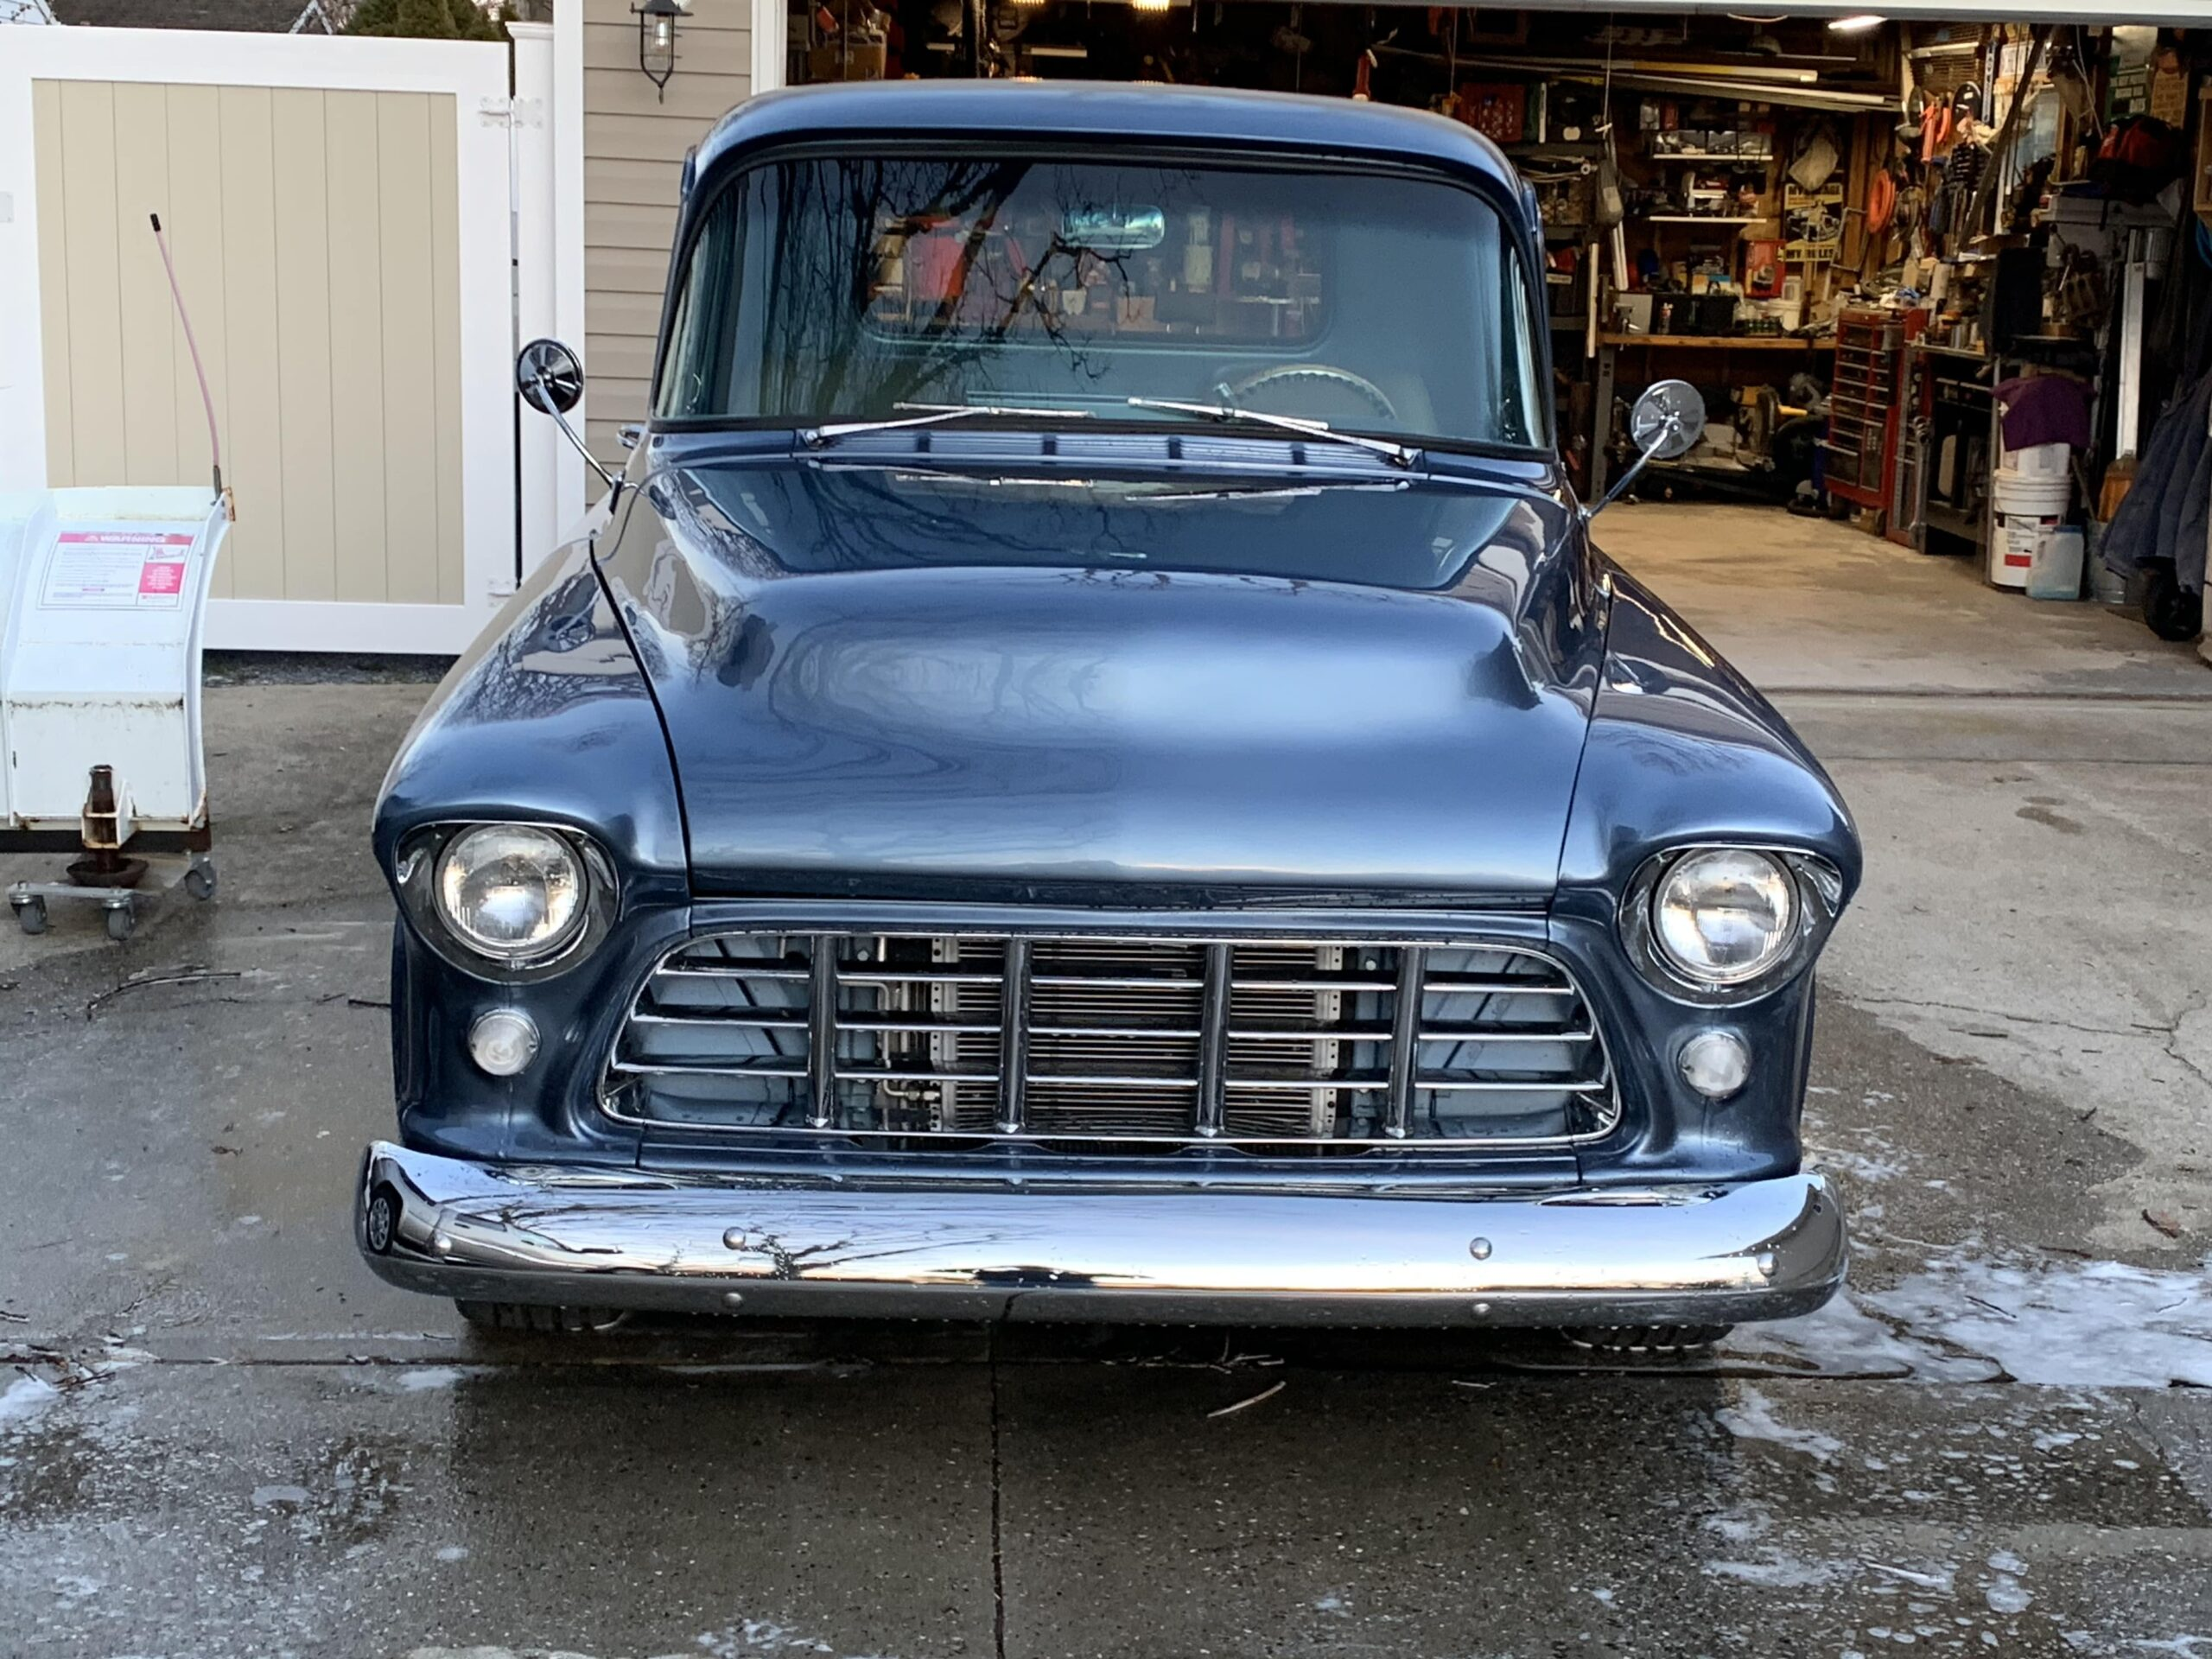 Chris Scottolavino, East Patchogue, NY- 1957 Chevrolet pick up